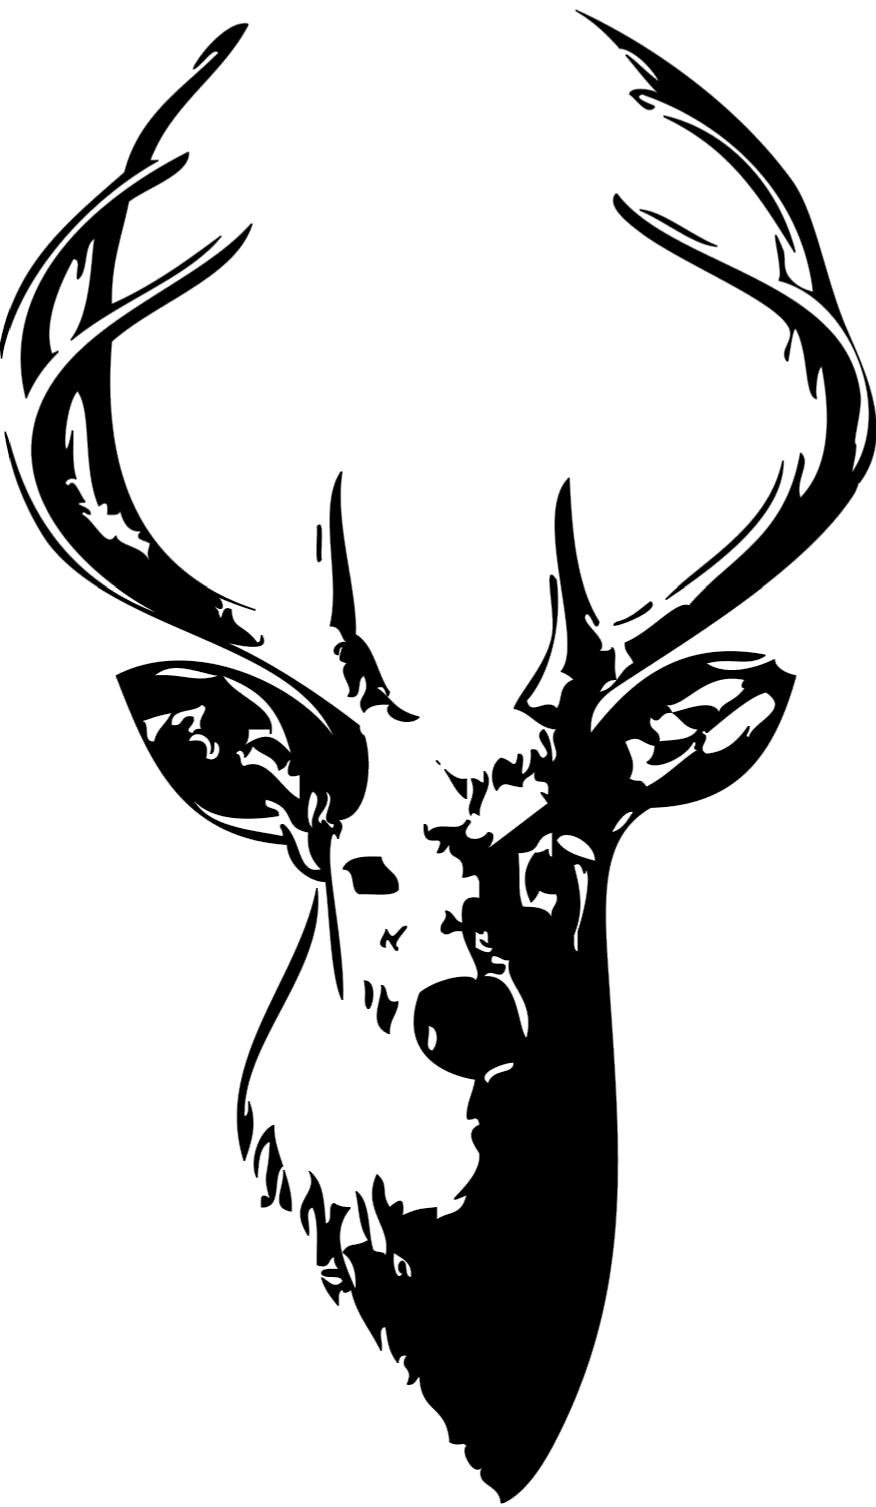 Deer Skull Clipart : skull, clipart, Library, Whitetail, Skull, Vector, Transparent, Download, Files, ▻▻▻, Clipart